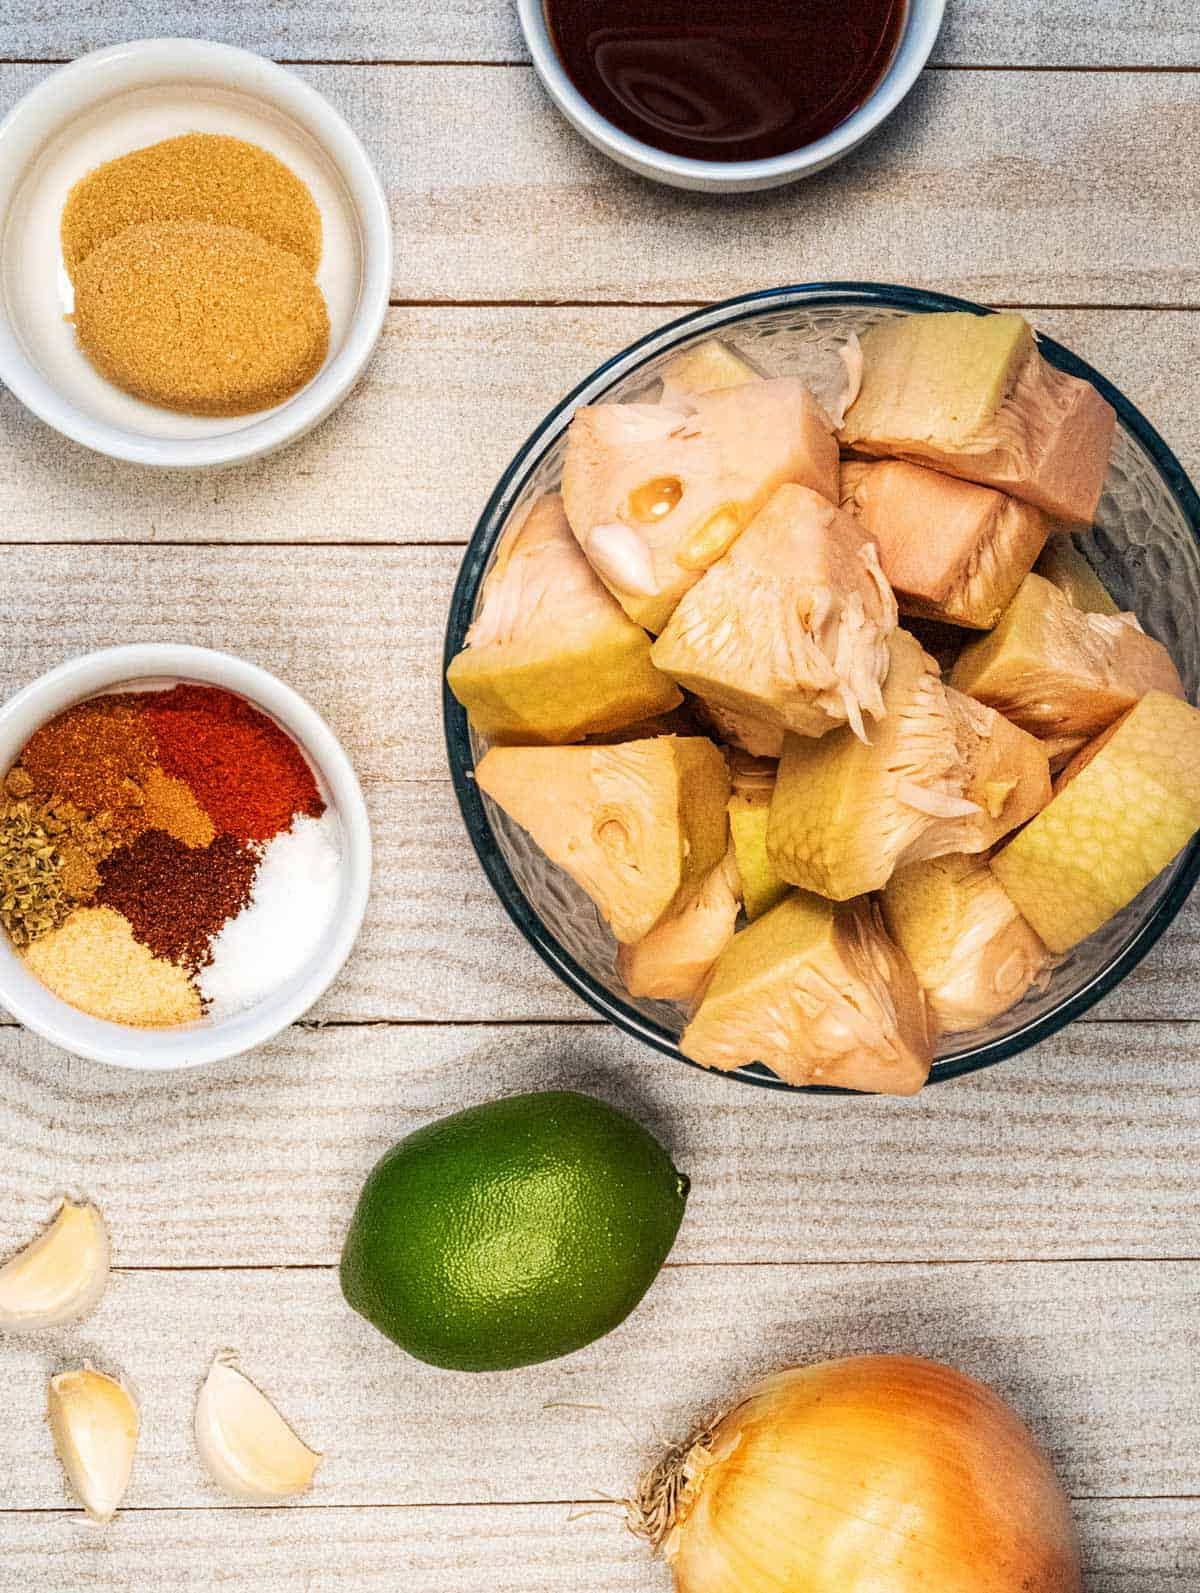 Jackfruit, lime, spices, garlic, onion, and soy sauce in dishes on a white wood table.